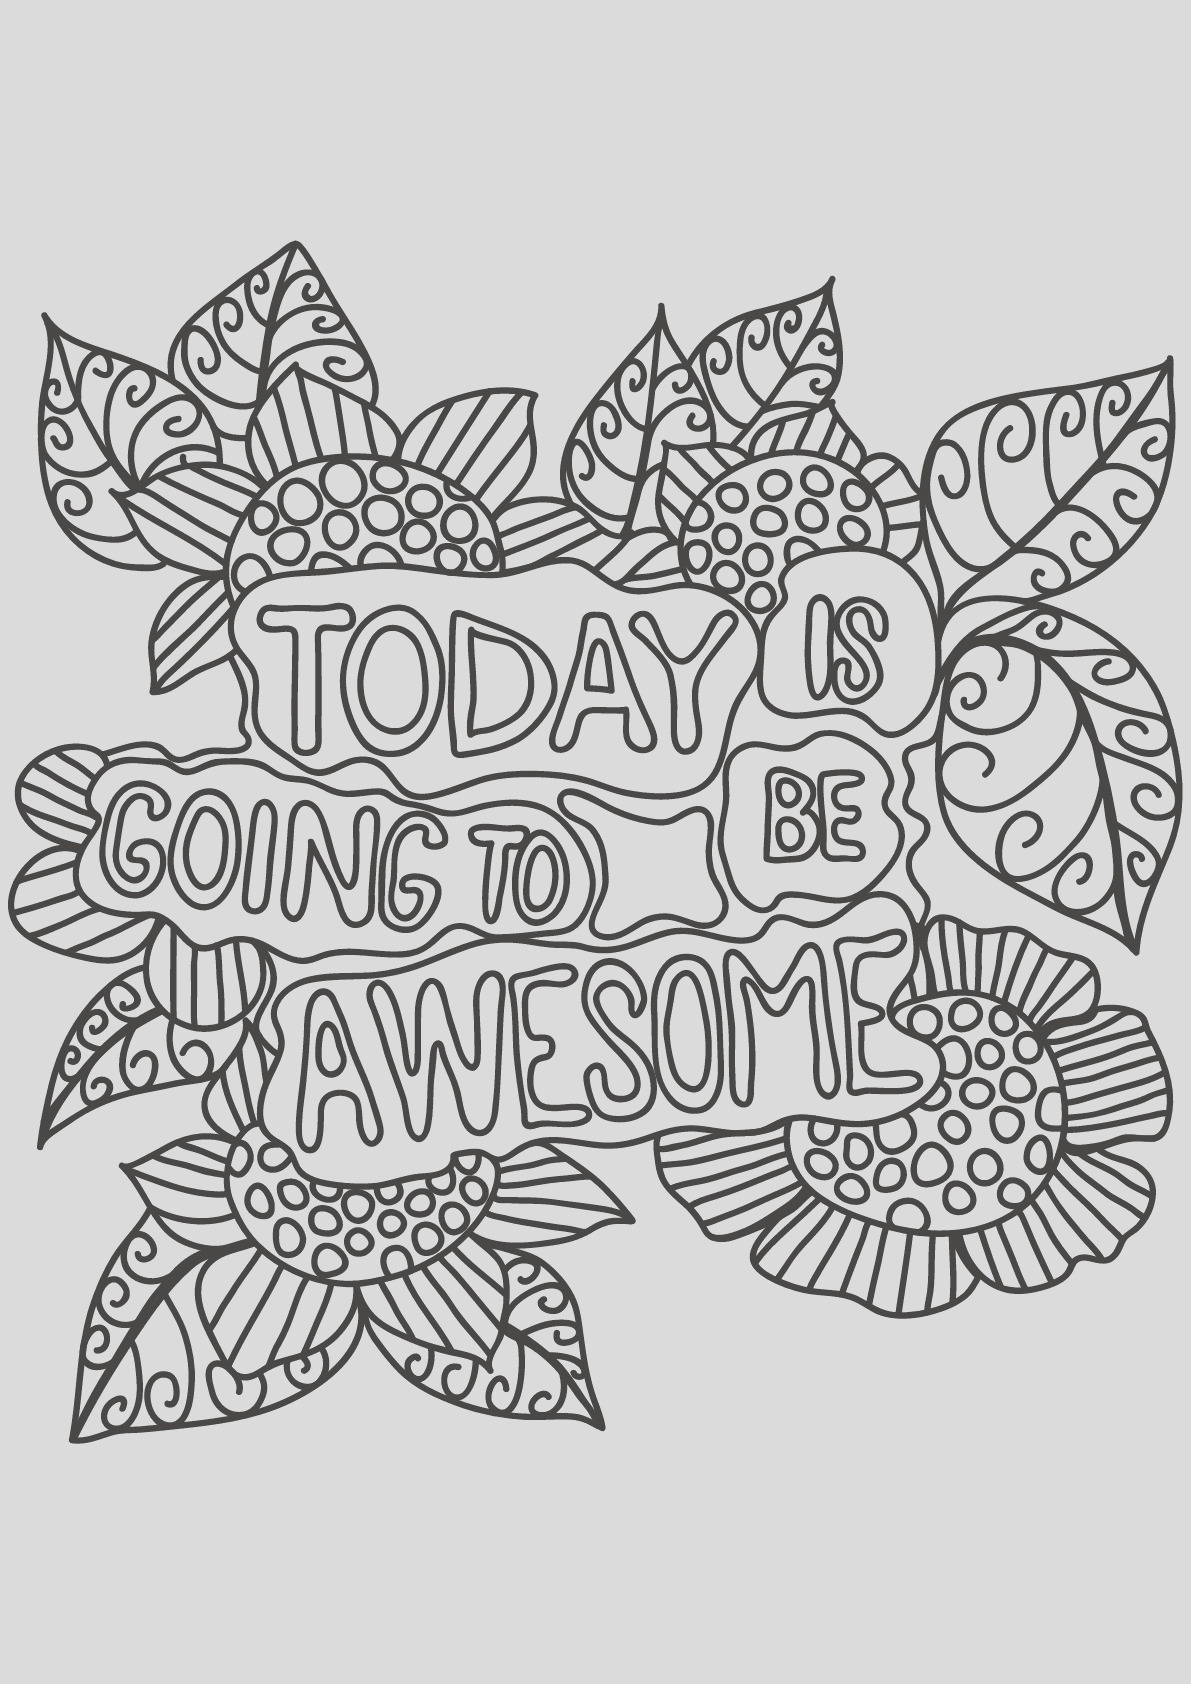 quotes image=quotes coloring free book quote 10 1